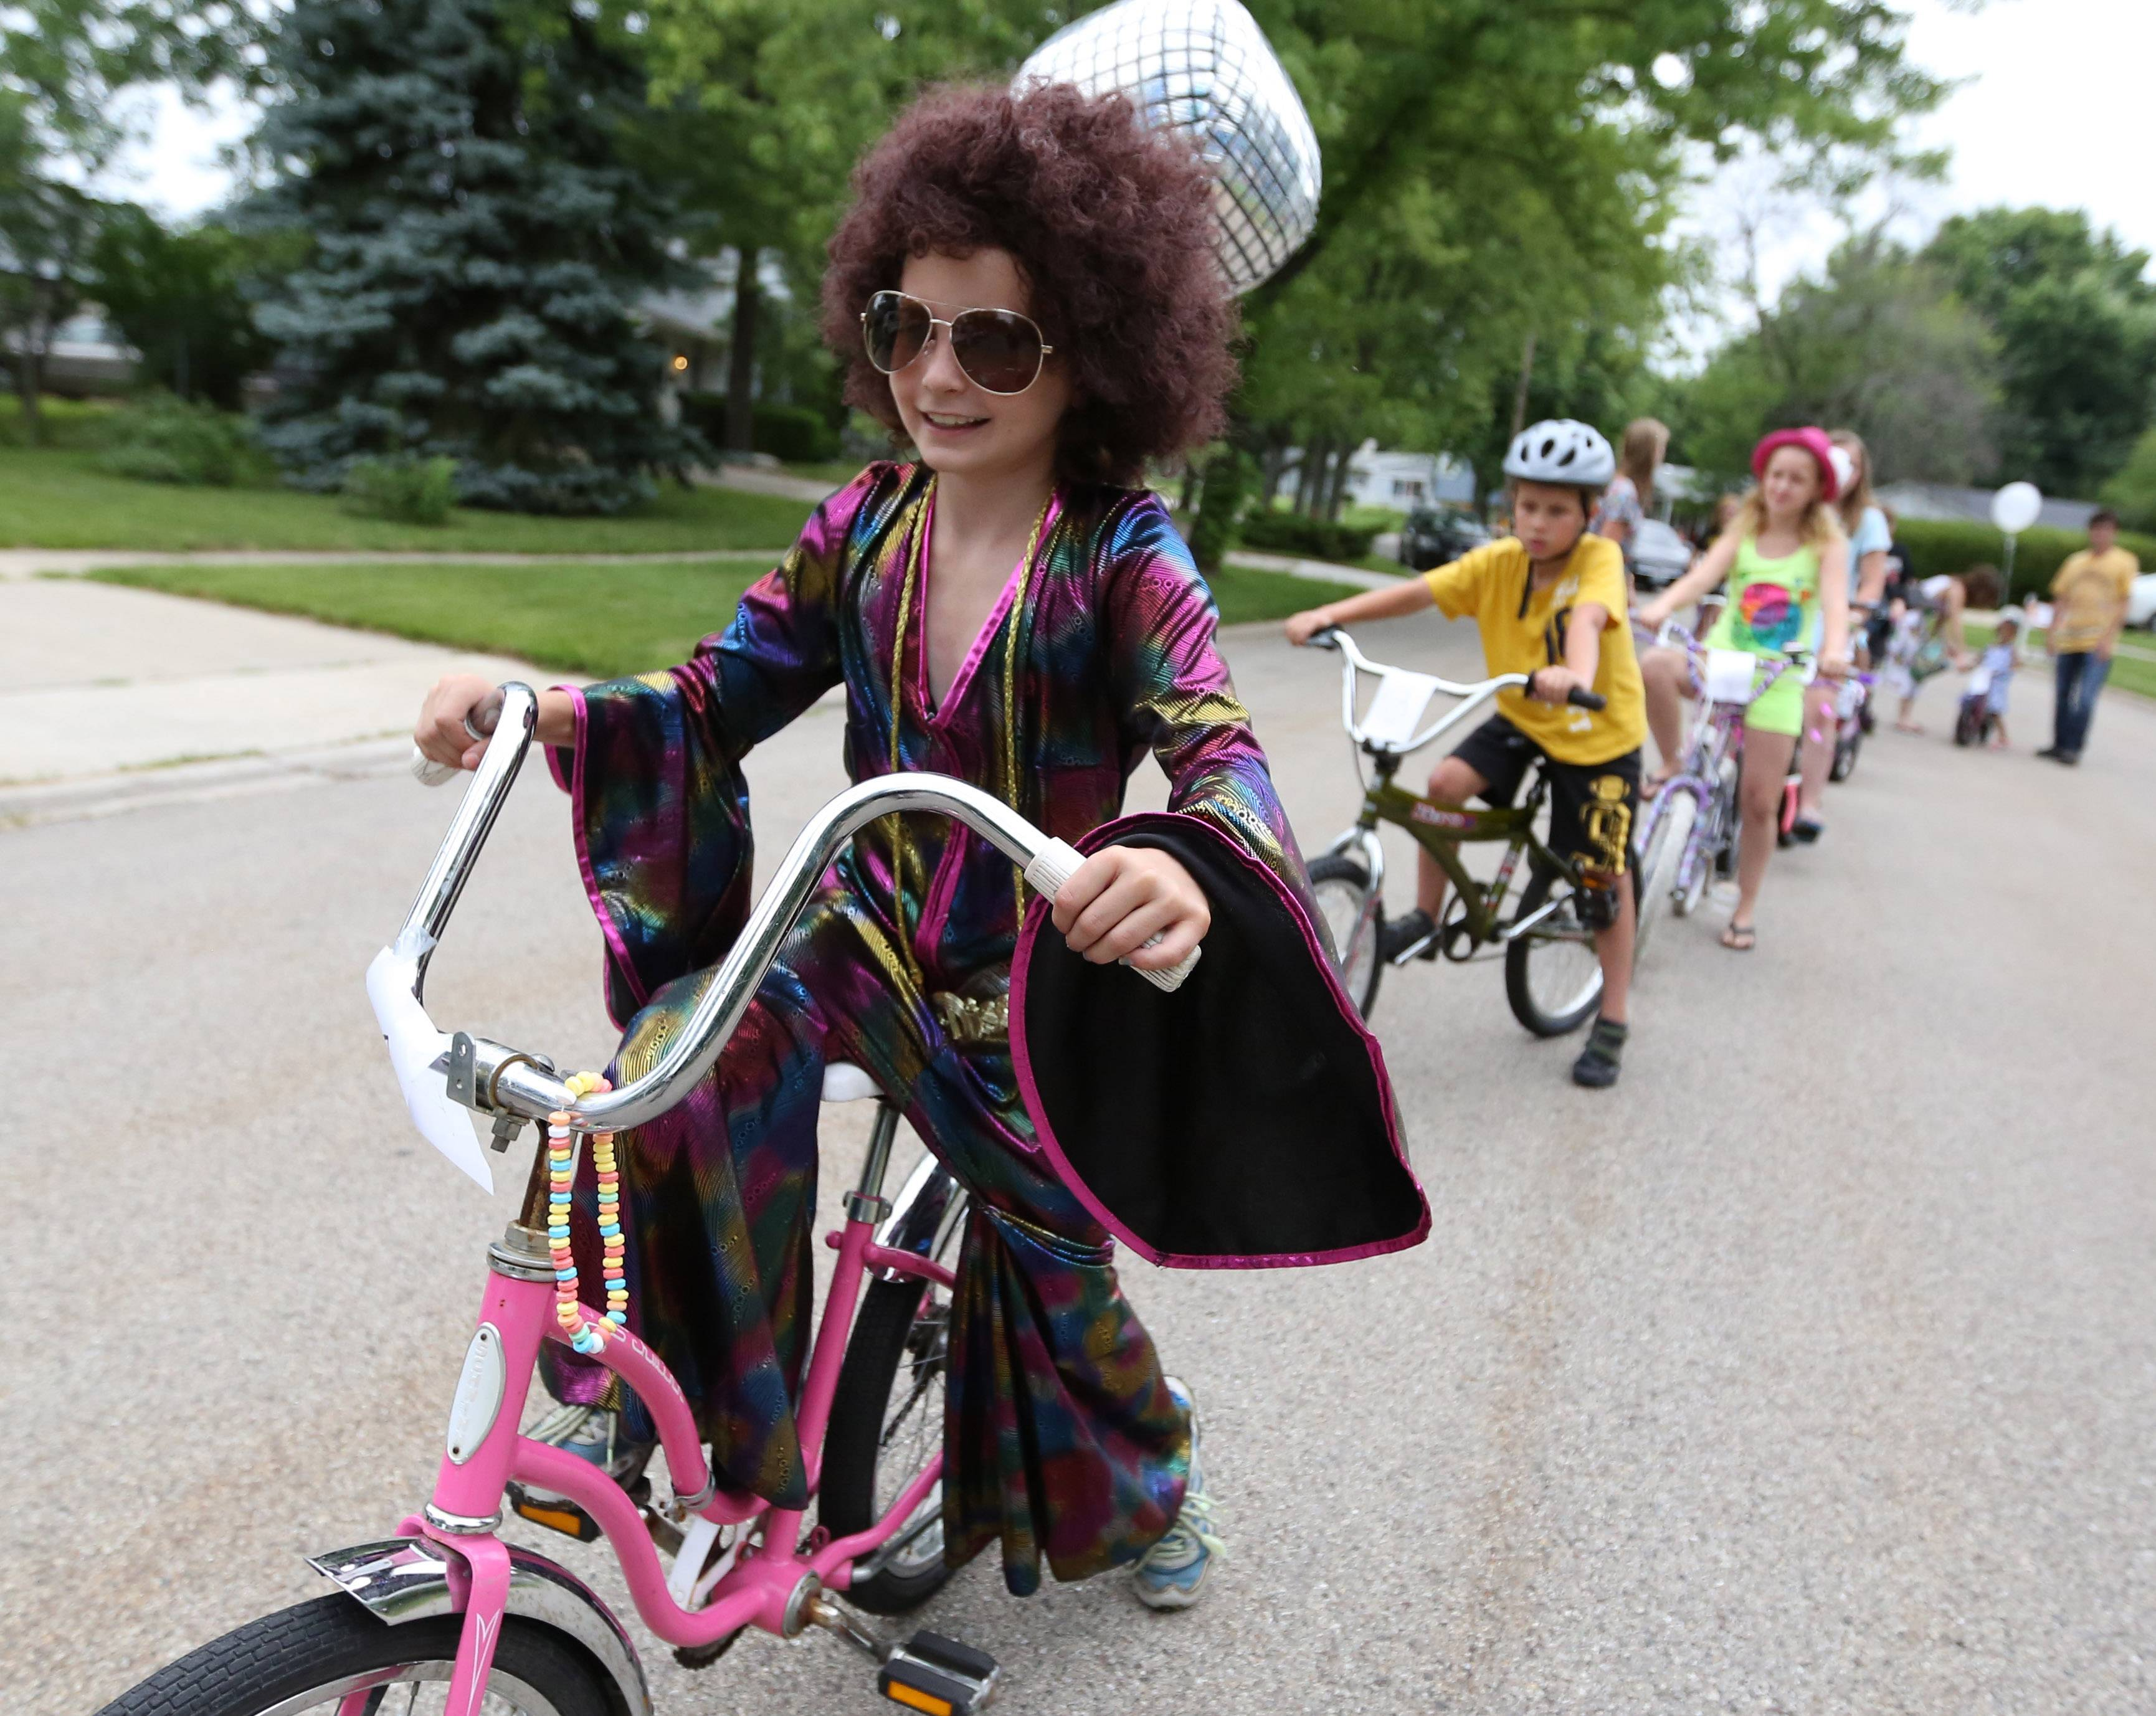 Gia Ruffolo, 8, of Grandwood Park leads a judged kids bike parade Saturday near Adams Park as part of the Grandwood Park Summerfest.